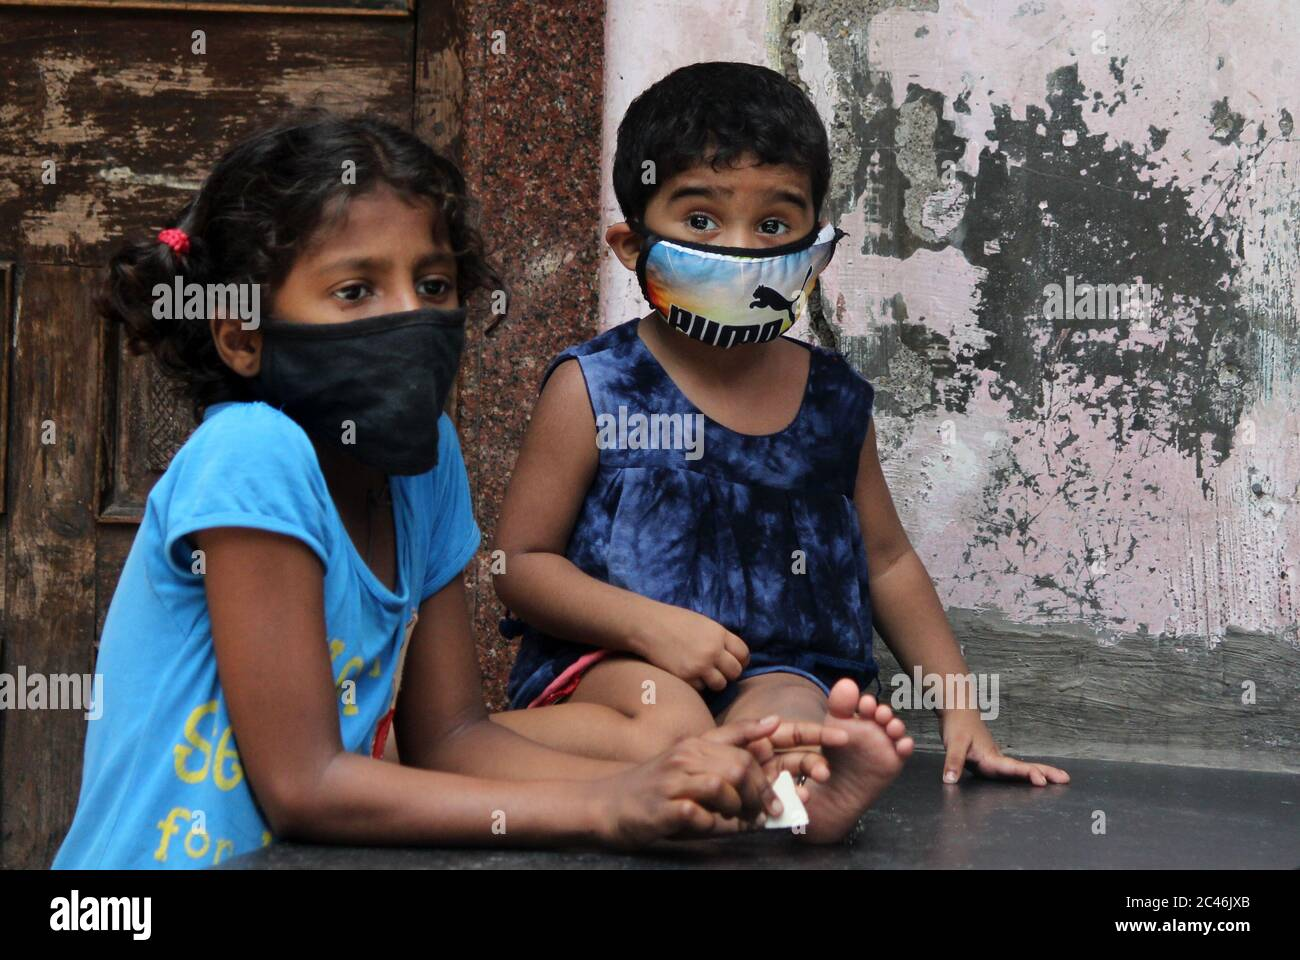 Children wearing protective masks are seen inside a slum colony.The Union Health Ministry on Sunday said the Maharashtra government and the Brihanmumbai Municipal Corporation (BMC) have been able to effectively bring down the covid-19 spread in Dharavi, Asia's largest slum colony. The BMC adopted a model of actively following four T's – Tracing, Tracking, Testing and Treating. An effective containment strategy, conducting comprehensive testing and ensuring uninterrupted supply of goods and essential supplies to the community. Stock Photo